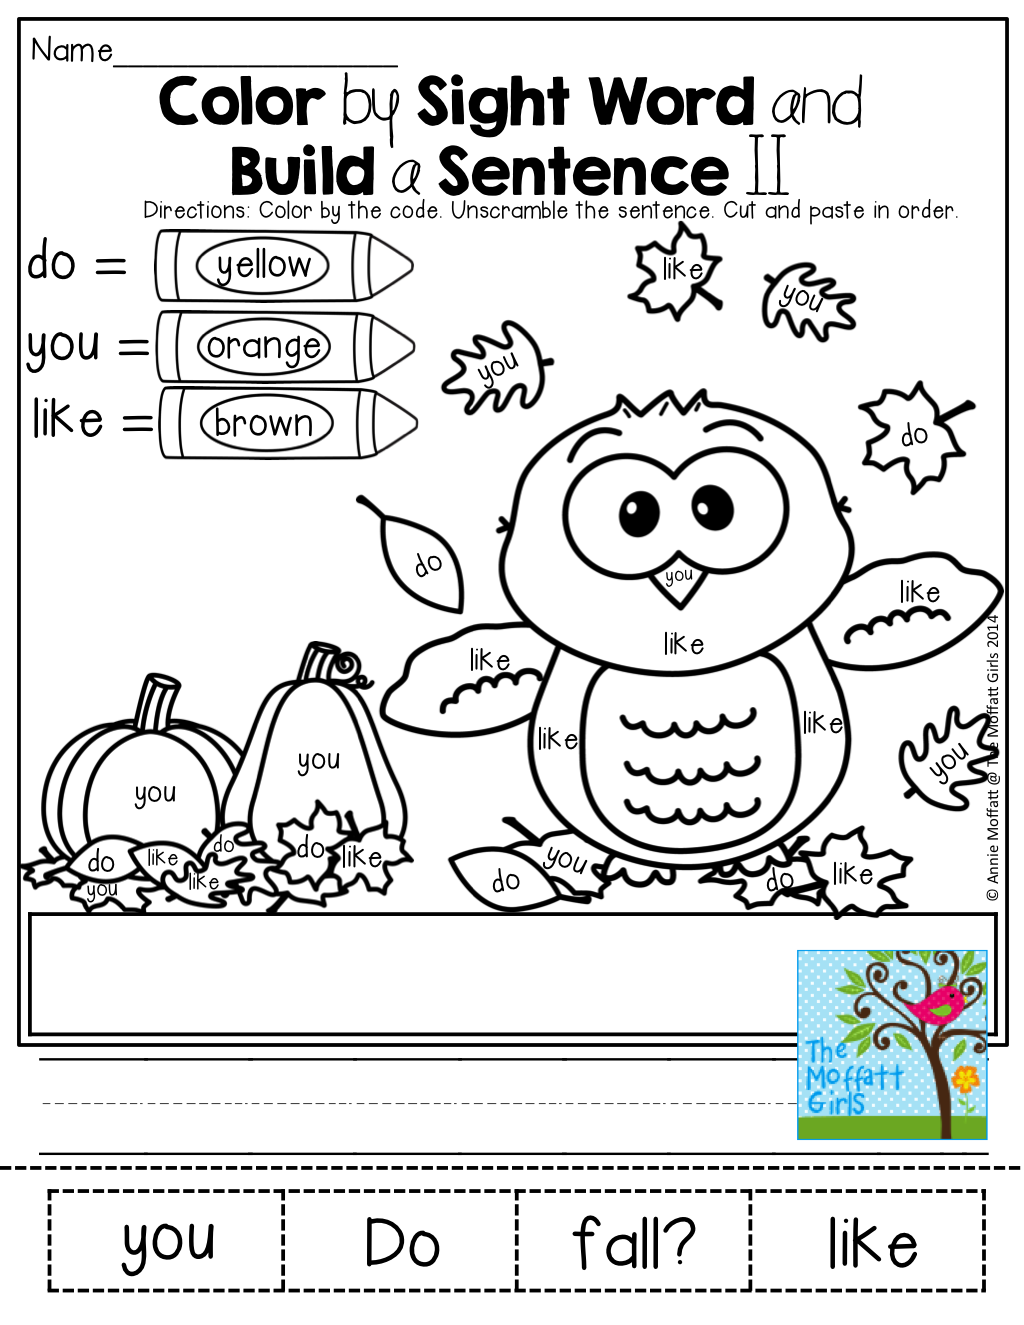 November Fun Filled Learning Resources